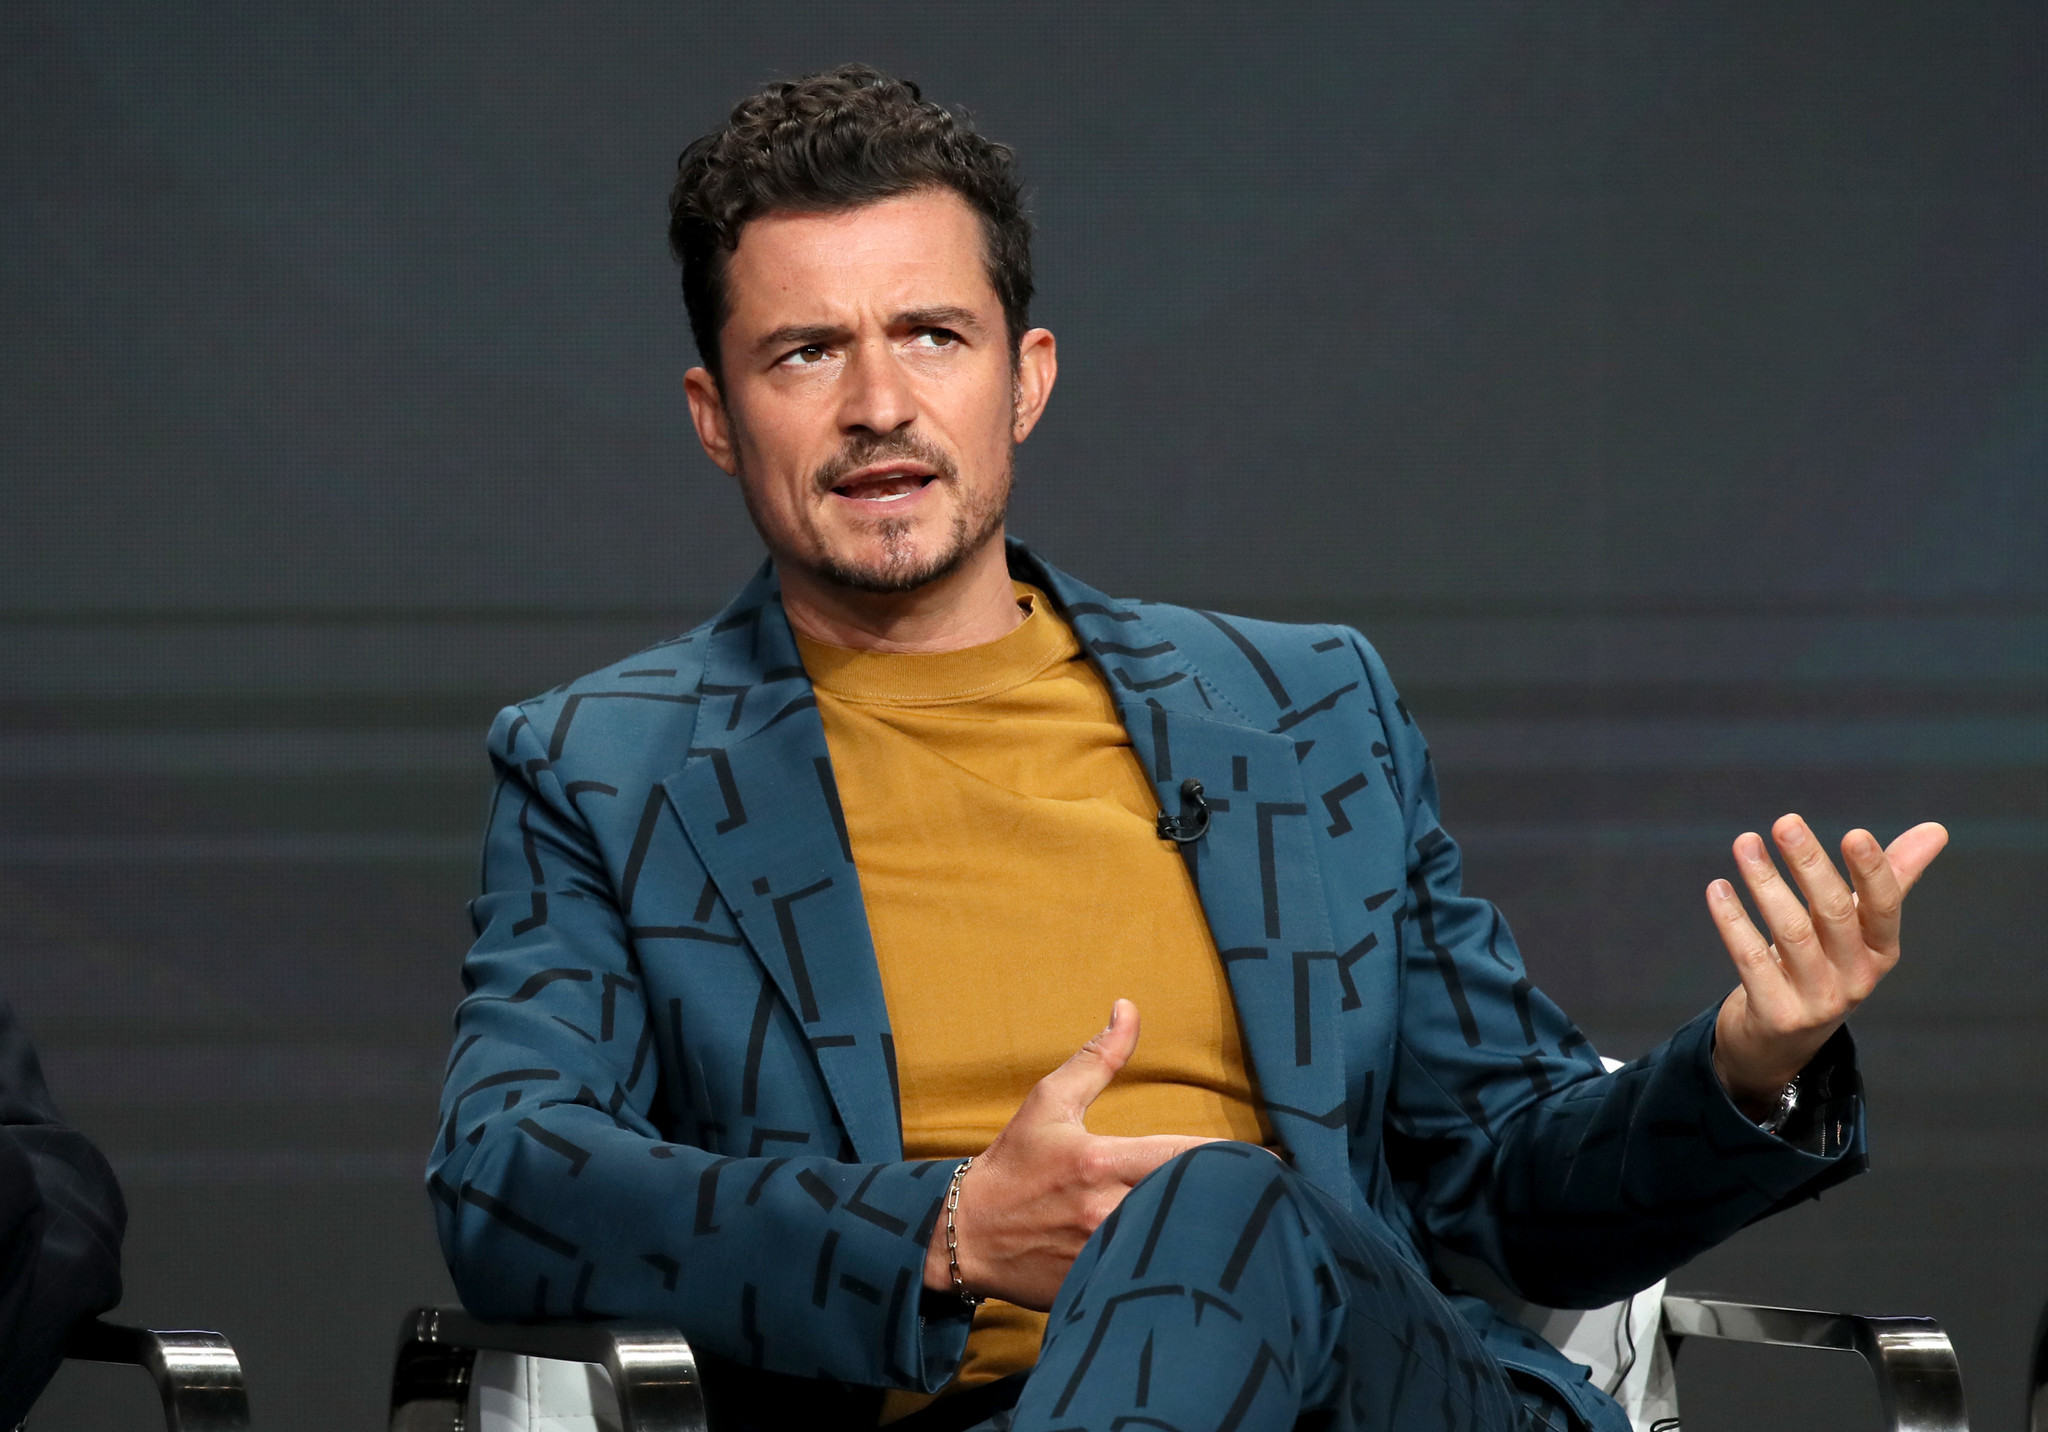 Orlando Bloom spells son's name wrong in new Morse code tattoo